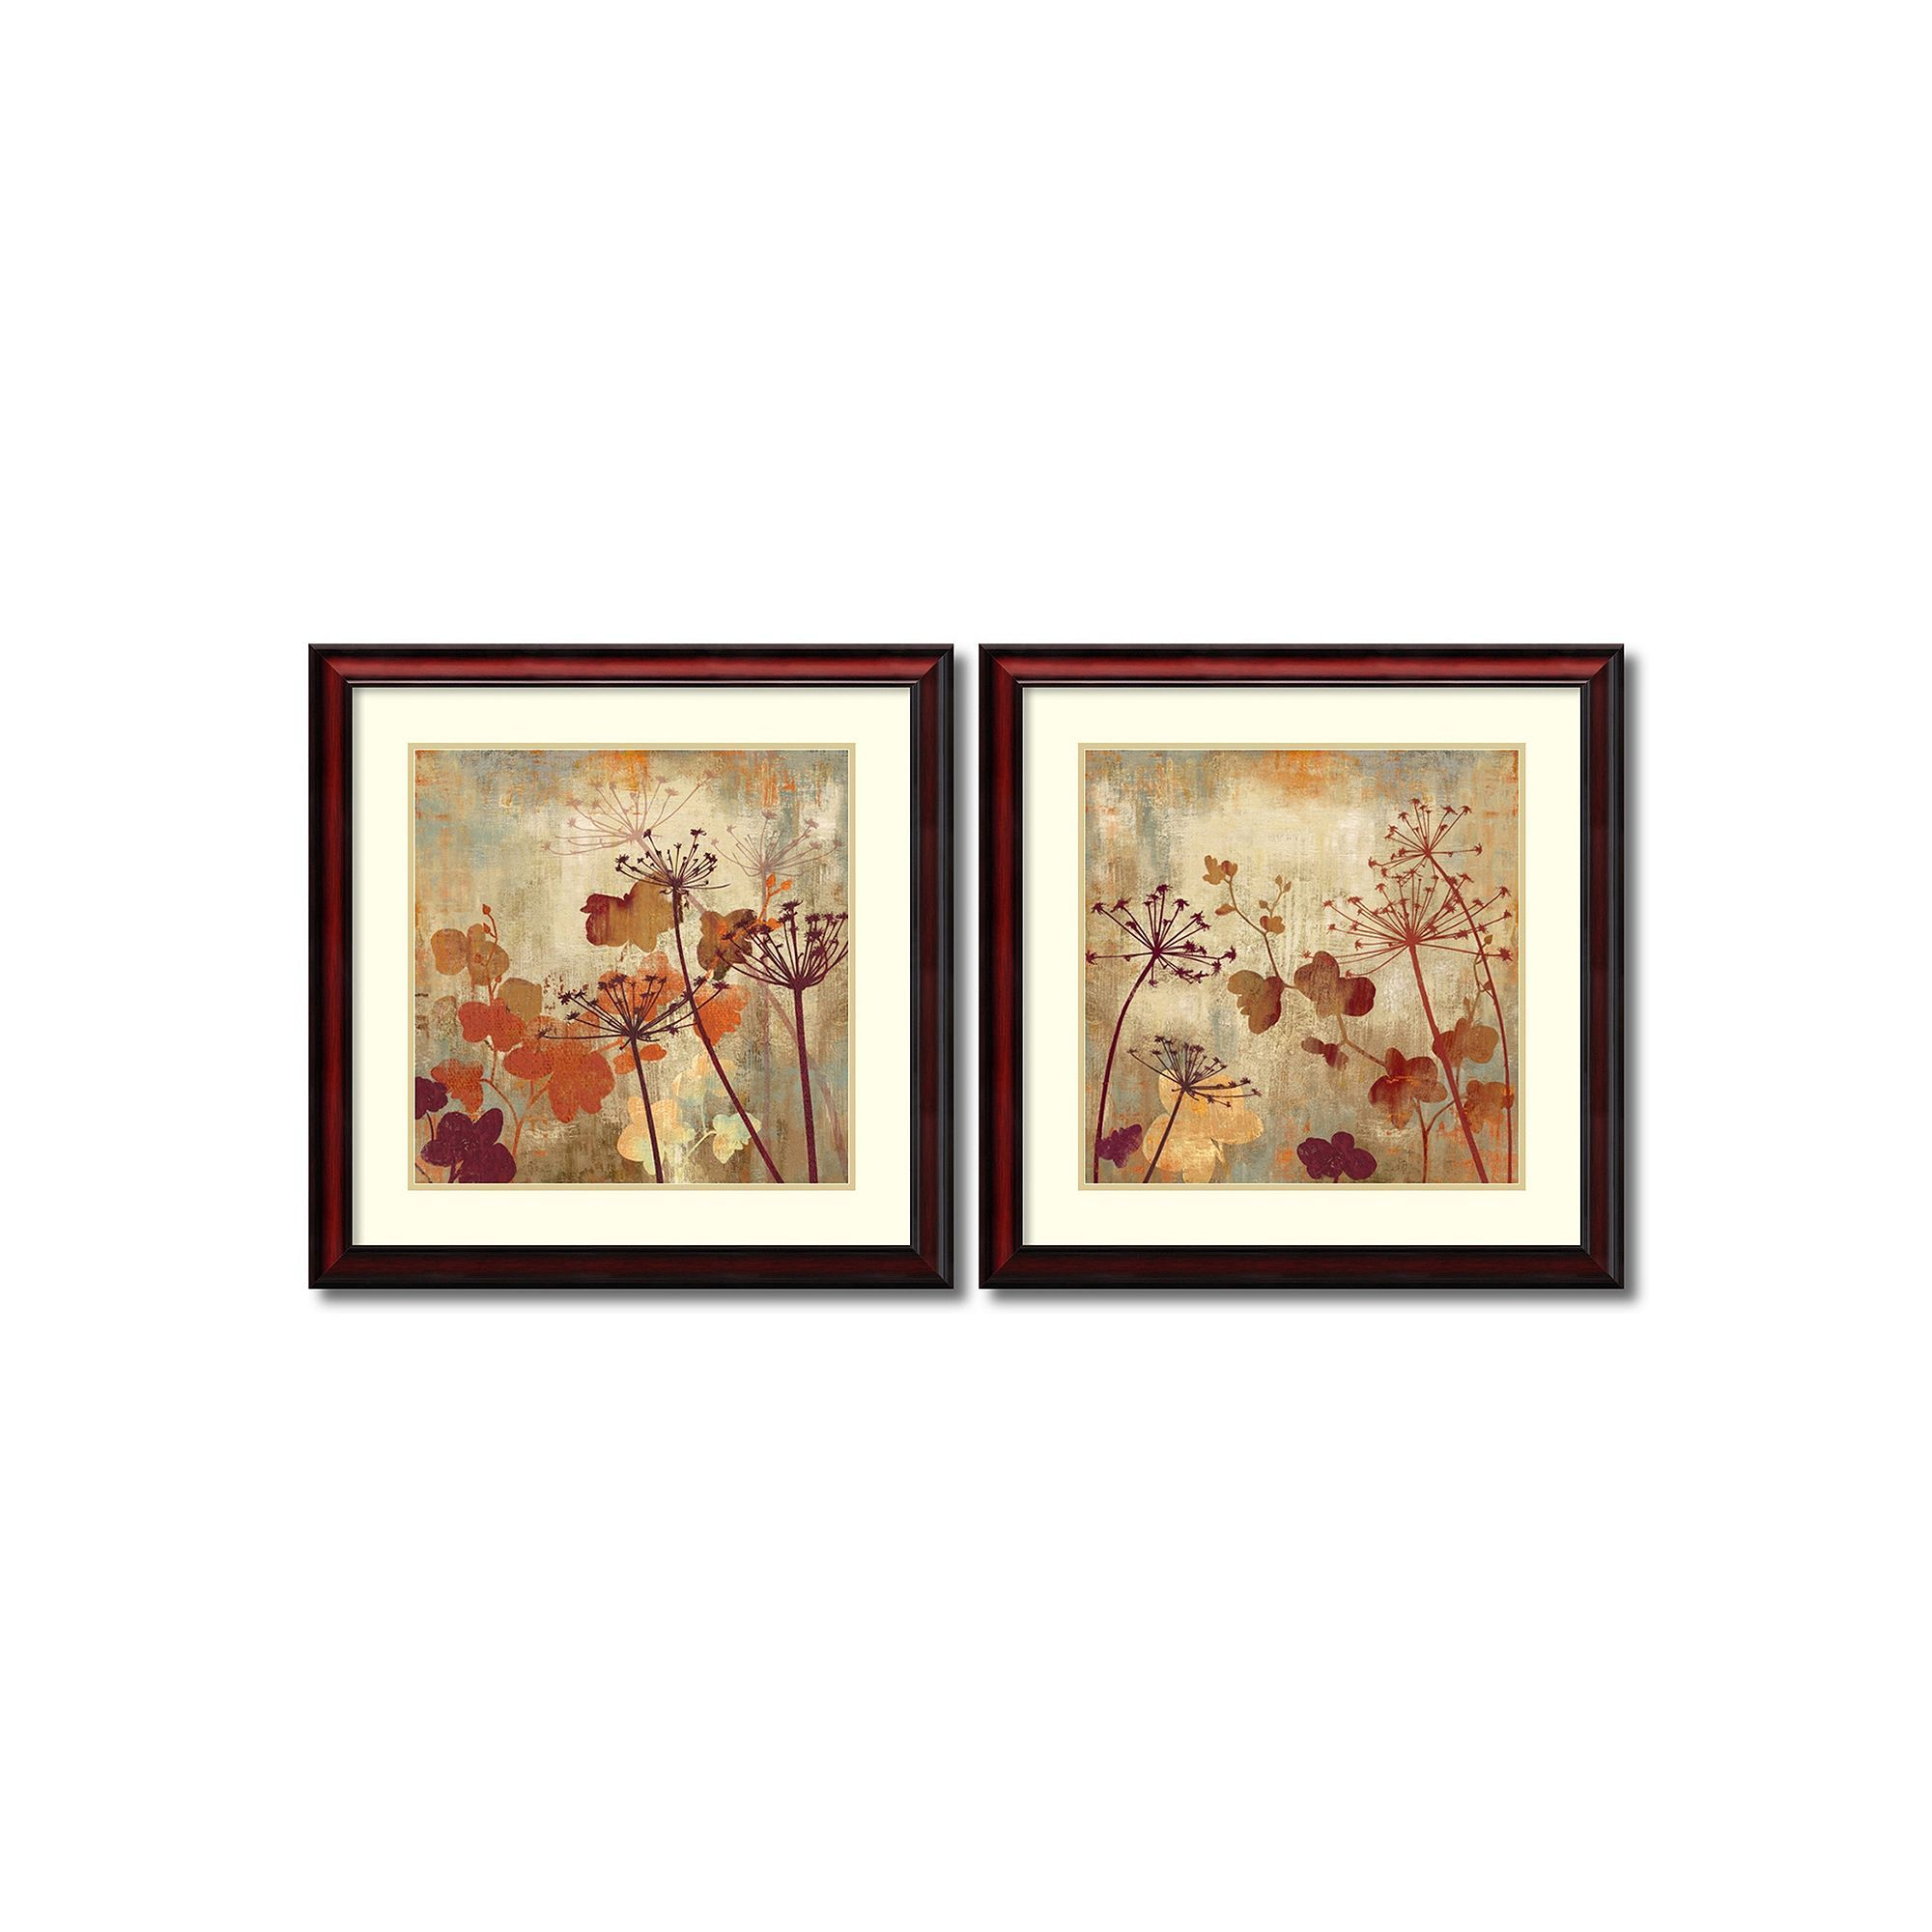 Wild Field\'\' Floral 2-piece Framed Wall Art Set, Brown | Products ...